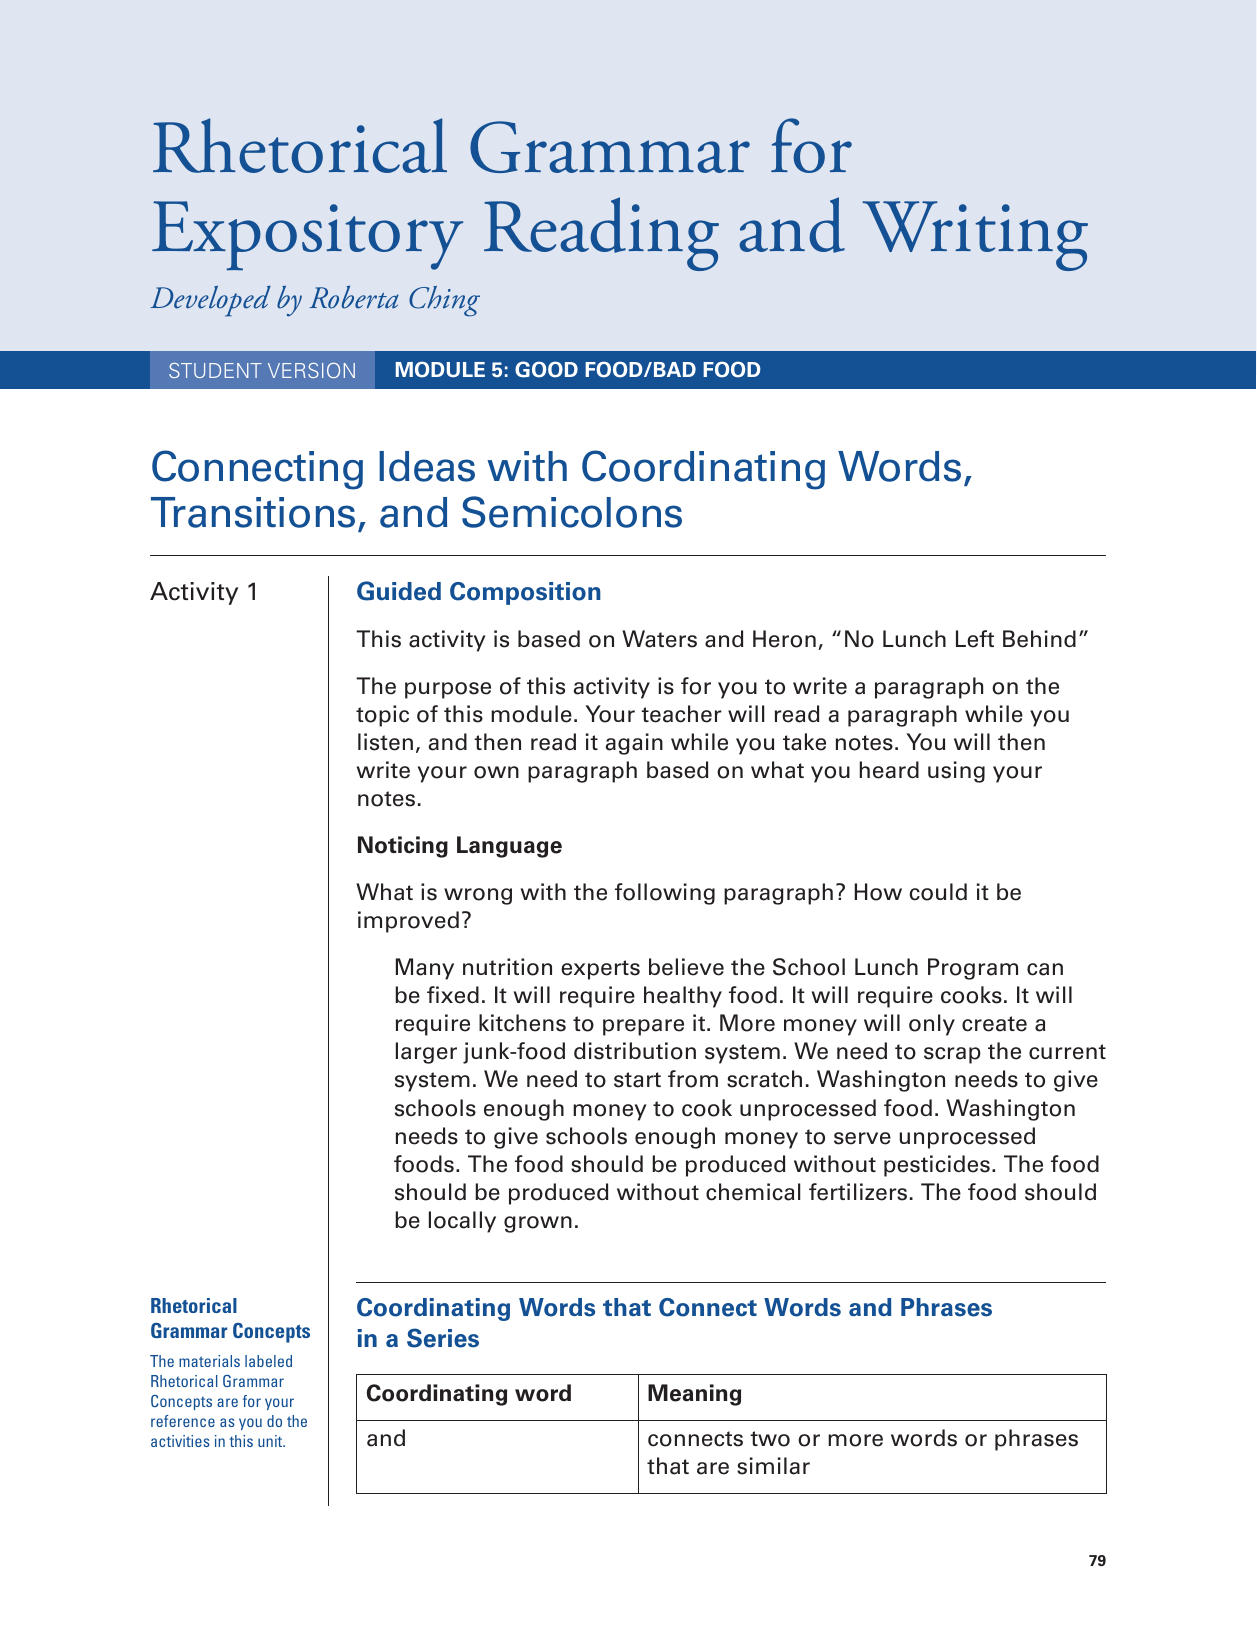 Rhetorical Grammar for Expository Reading and Writing